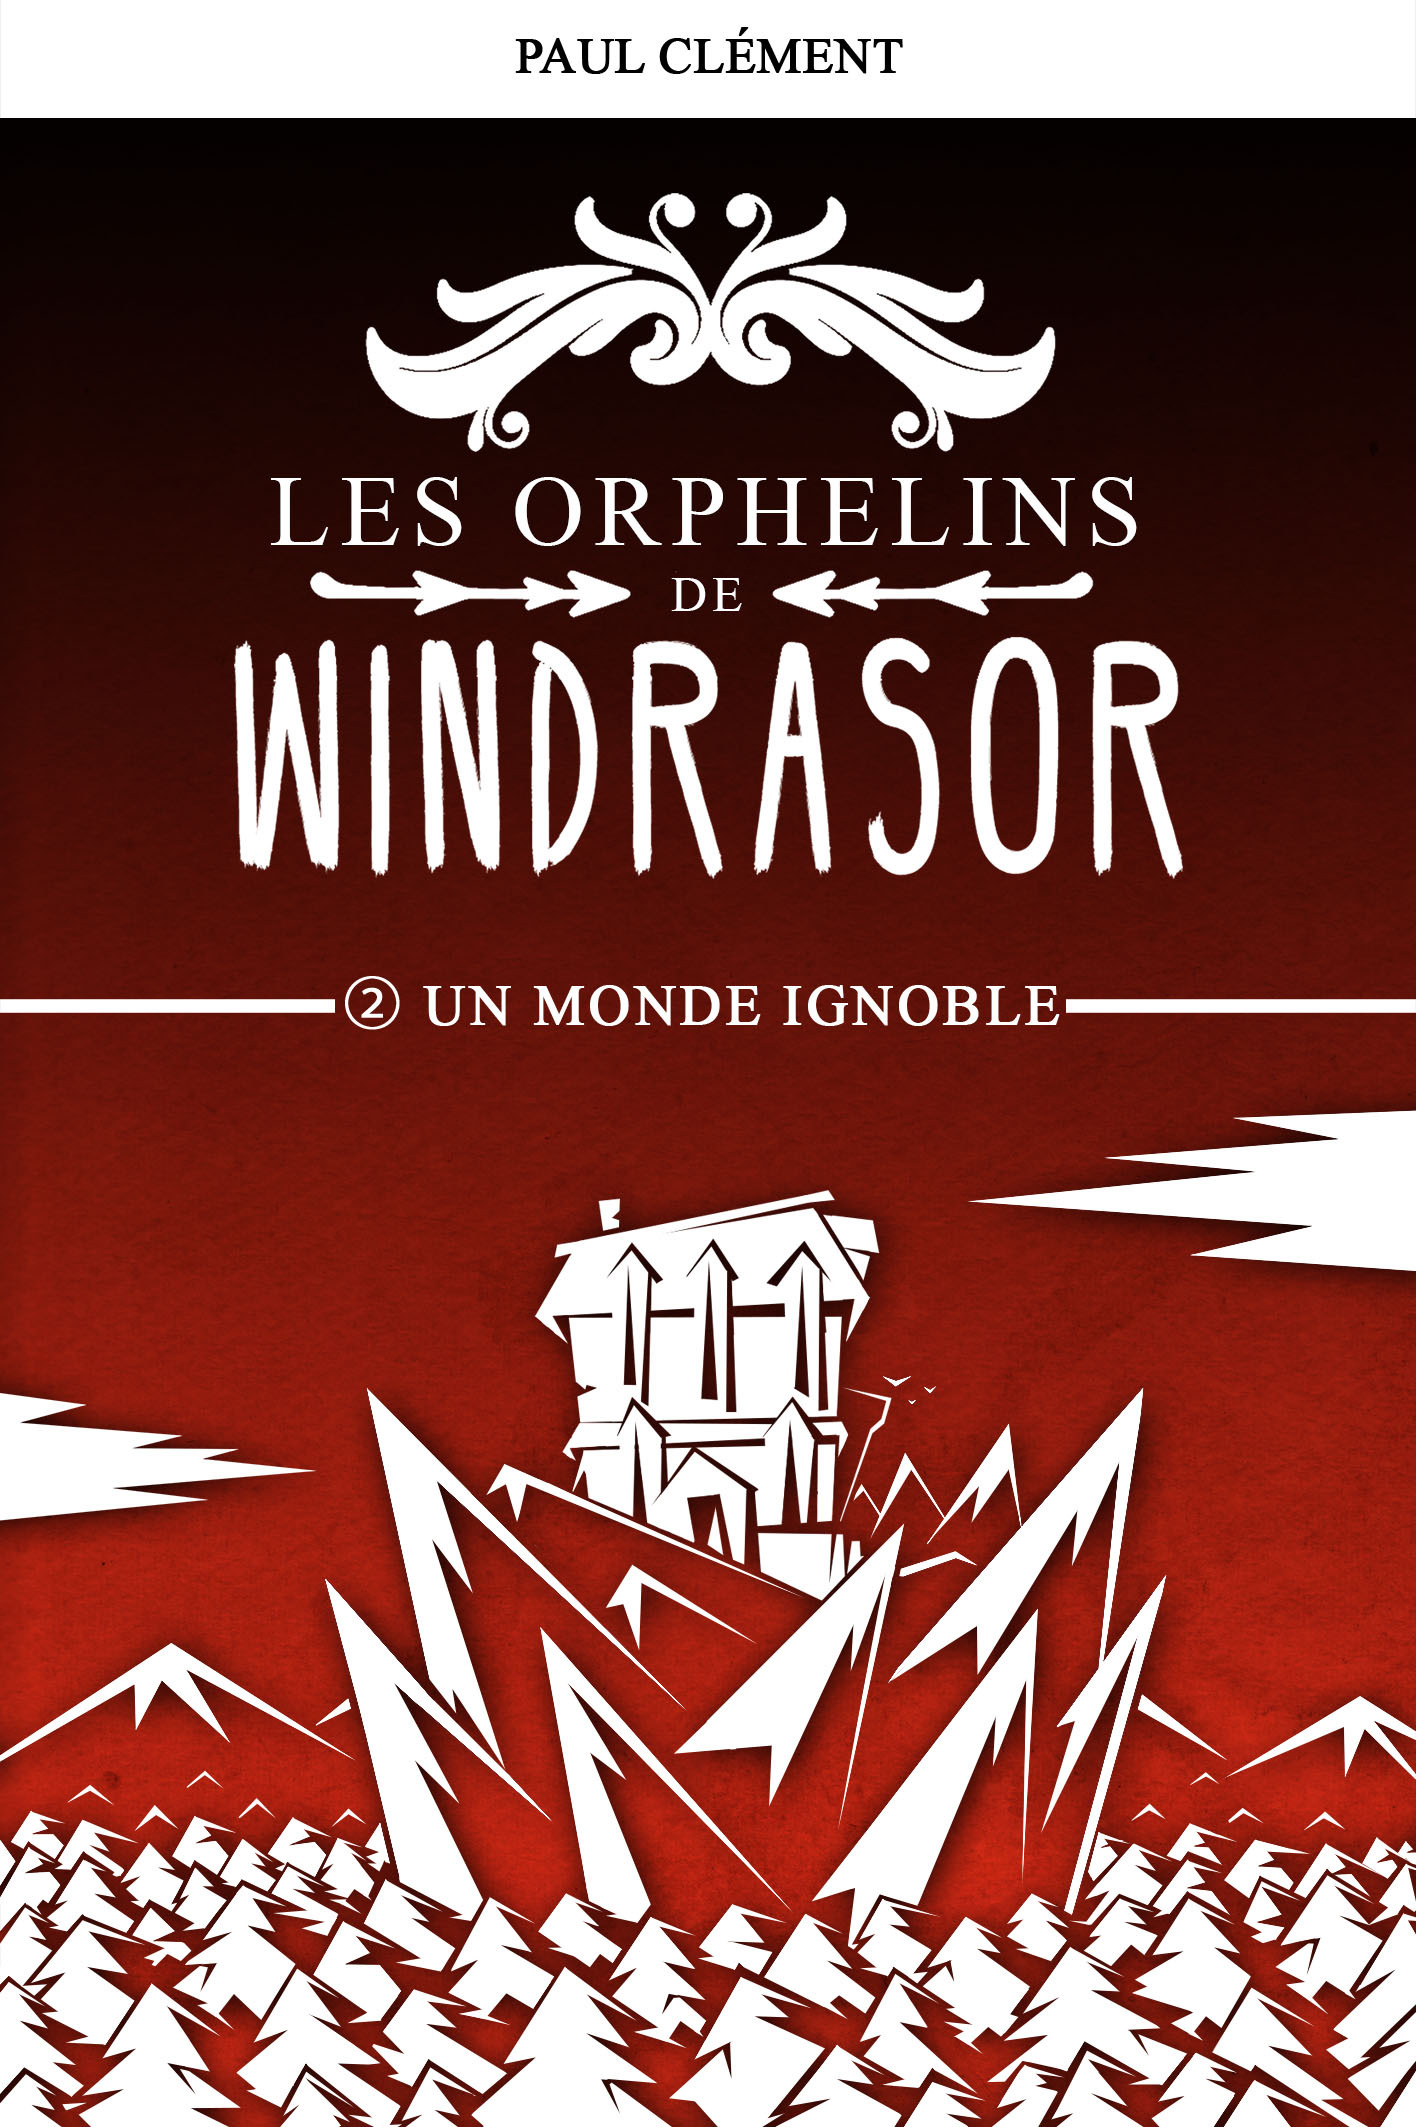 UN MONDE IGNOBLE (LES ORPHELINS DE WINDRASOR EPISODE 2)